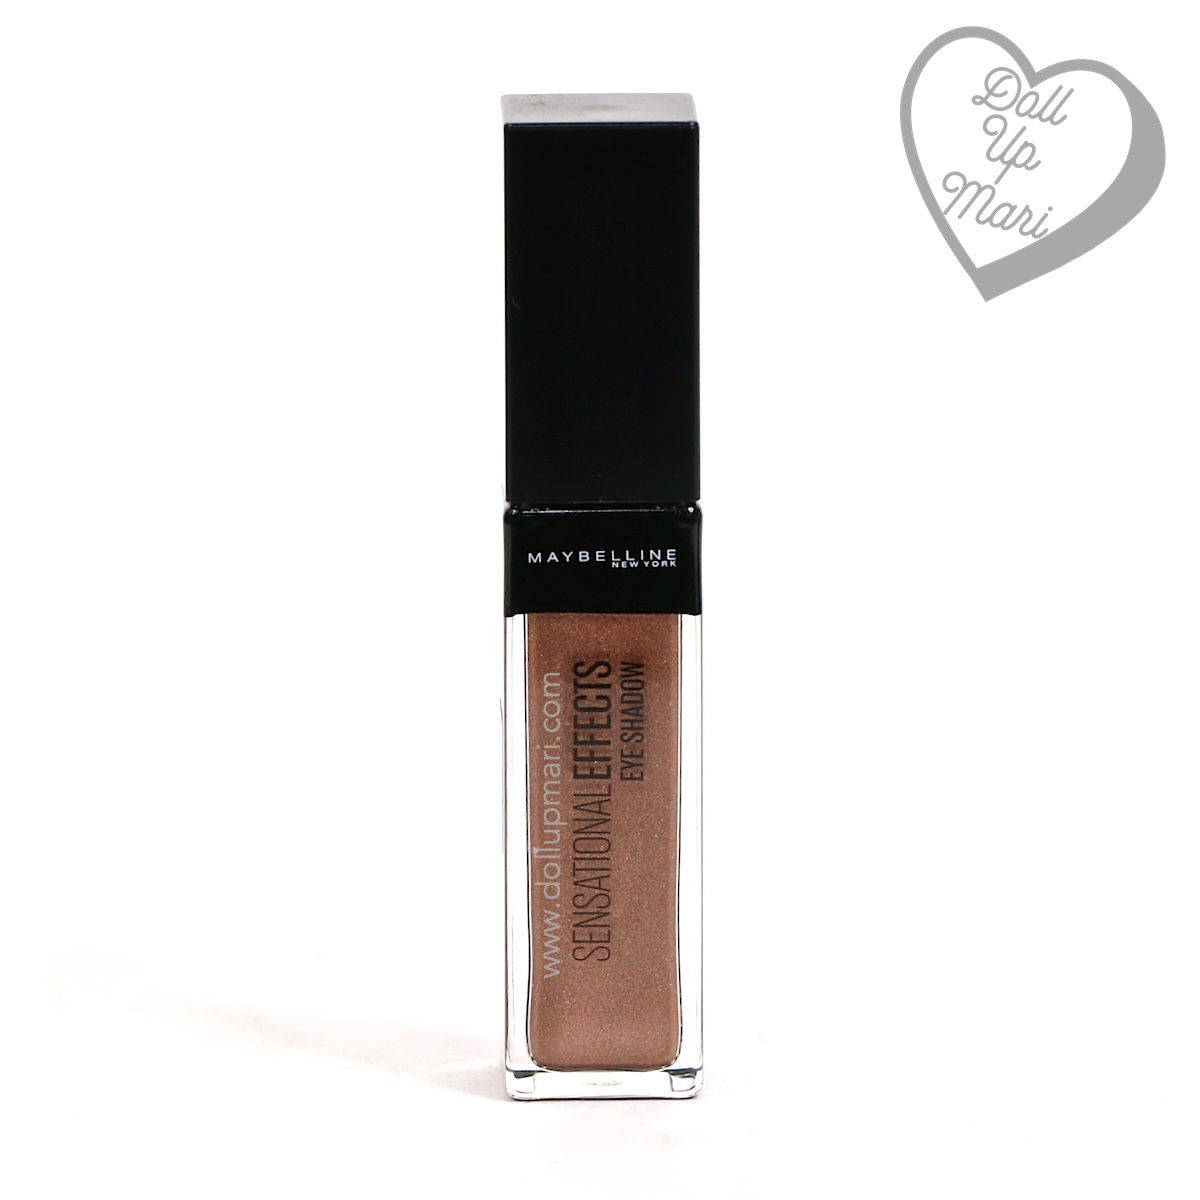 Maybelline Sensational Effects Liquid Eyeshadow S04 Smoky Bronze Pack Shot